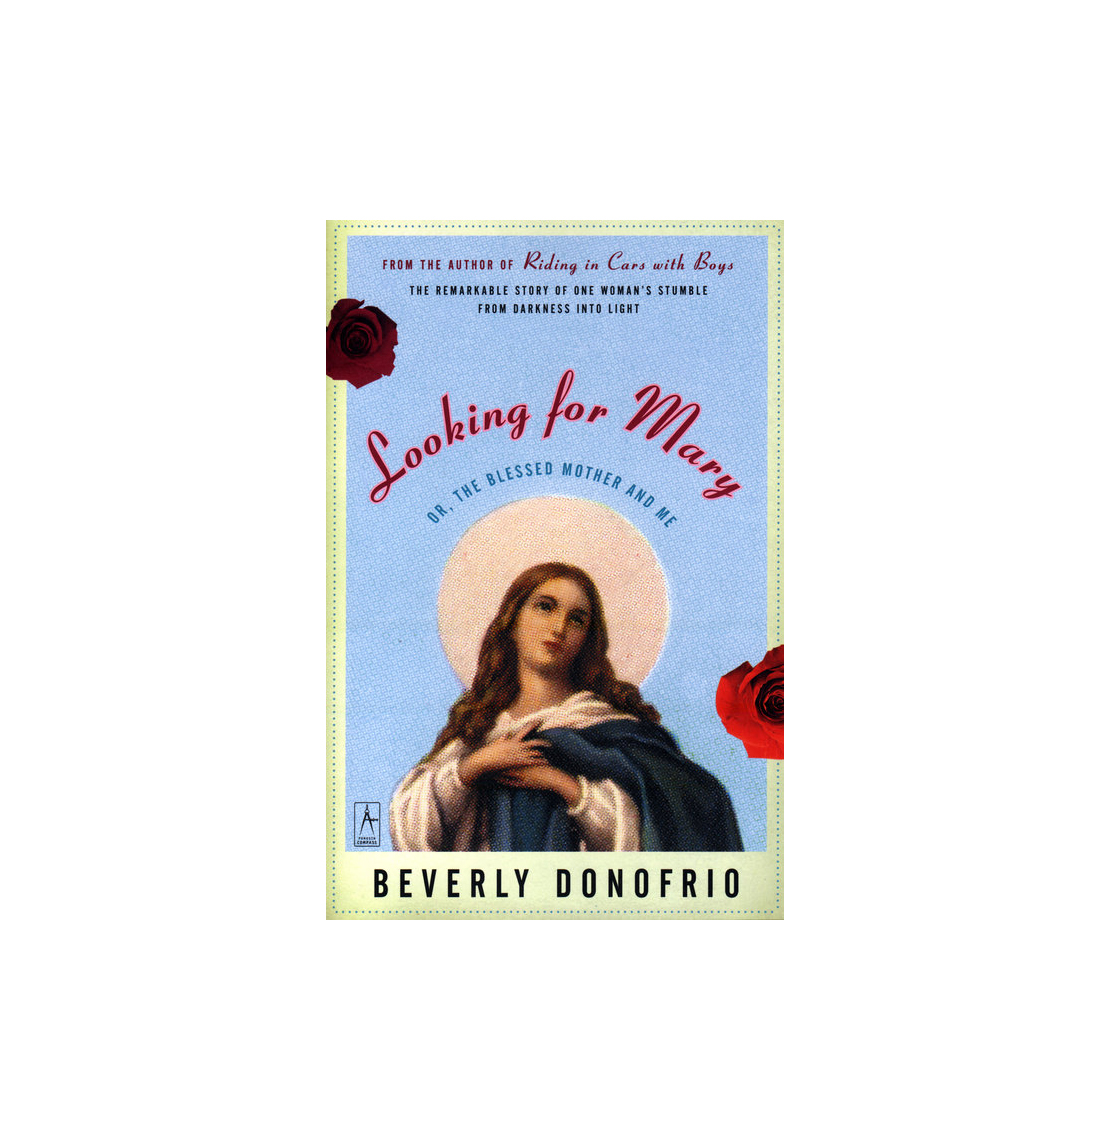 Looking for Mary, by Beverly Donofrio